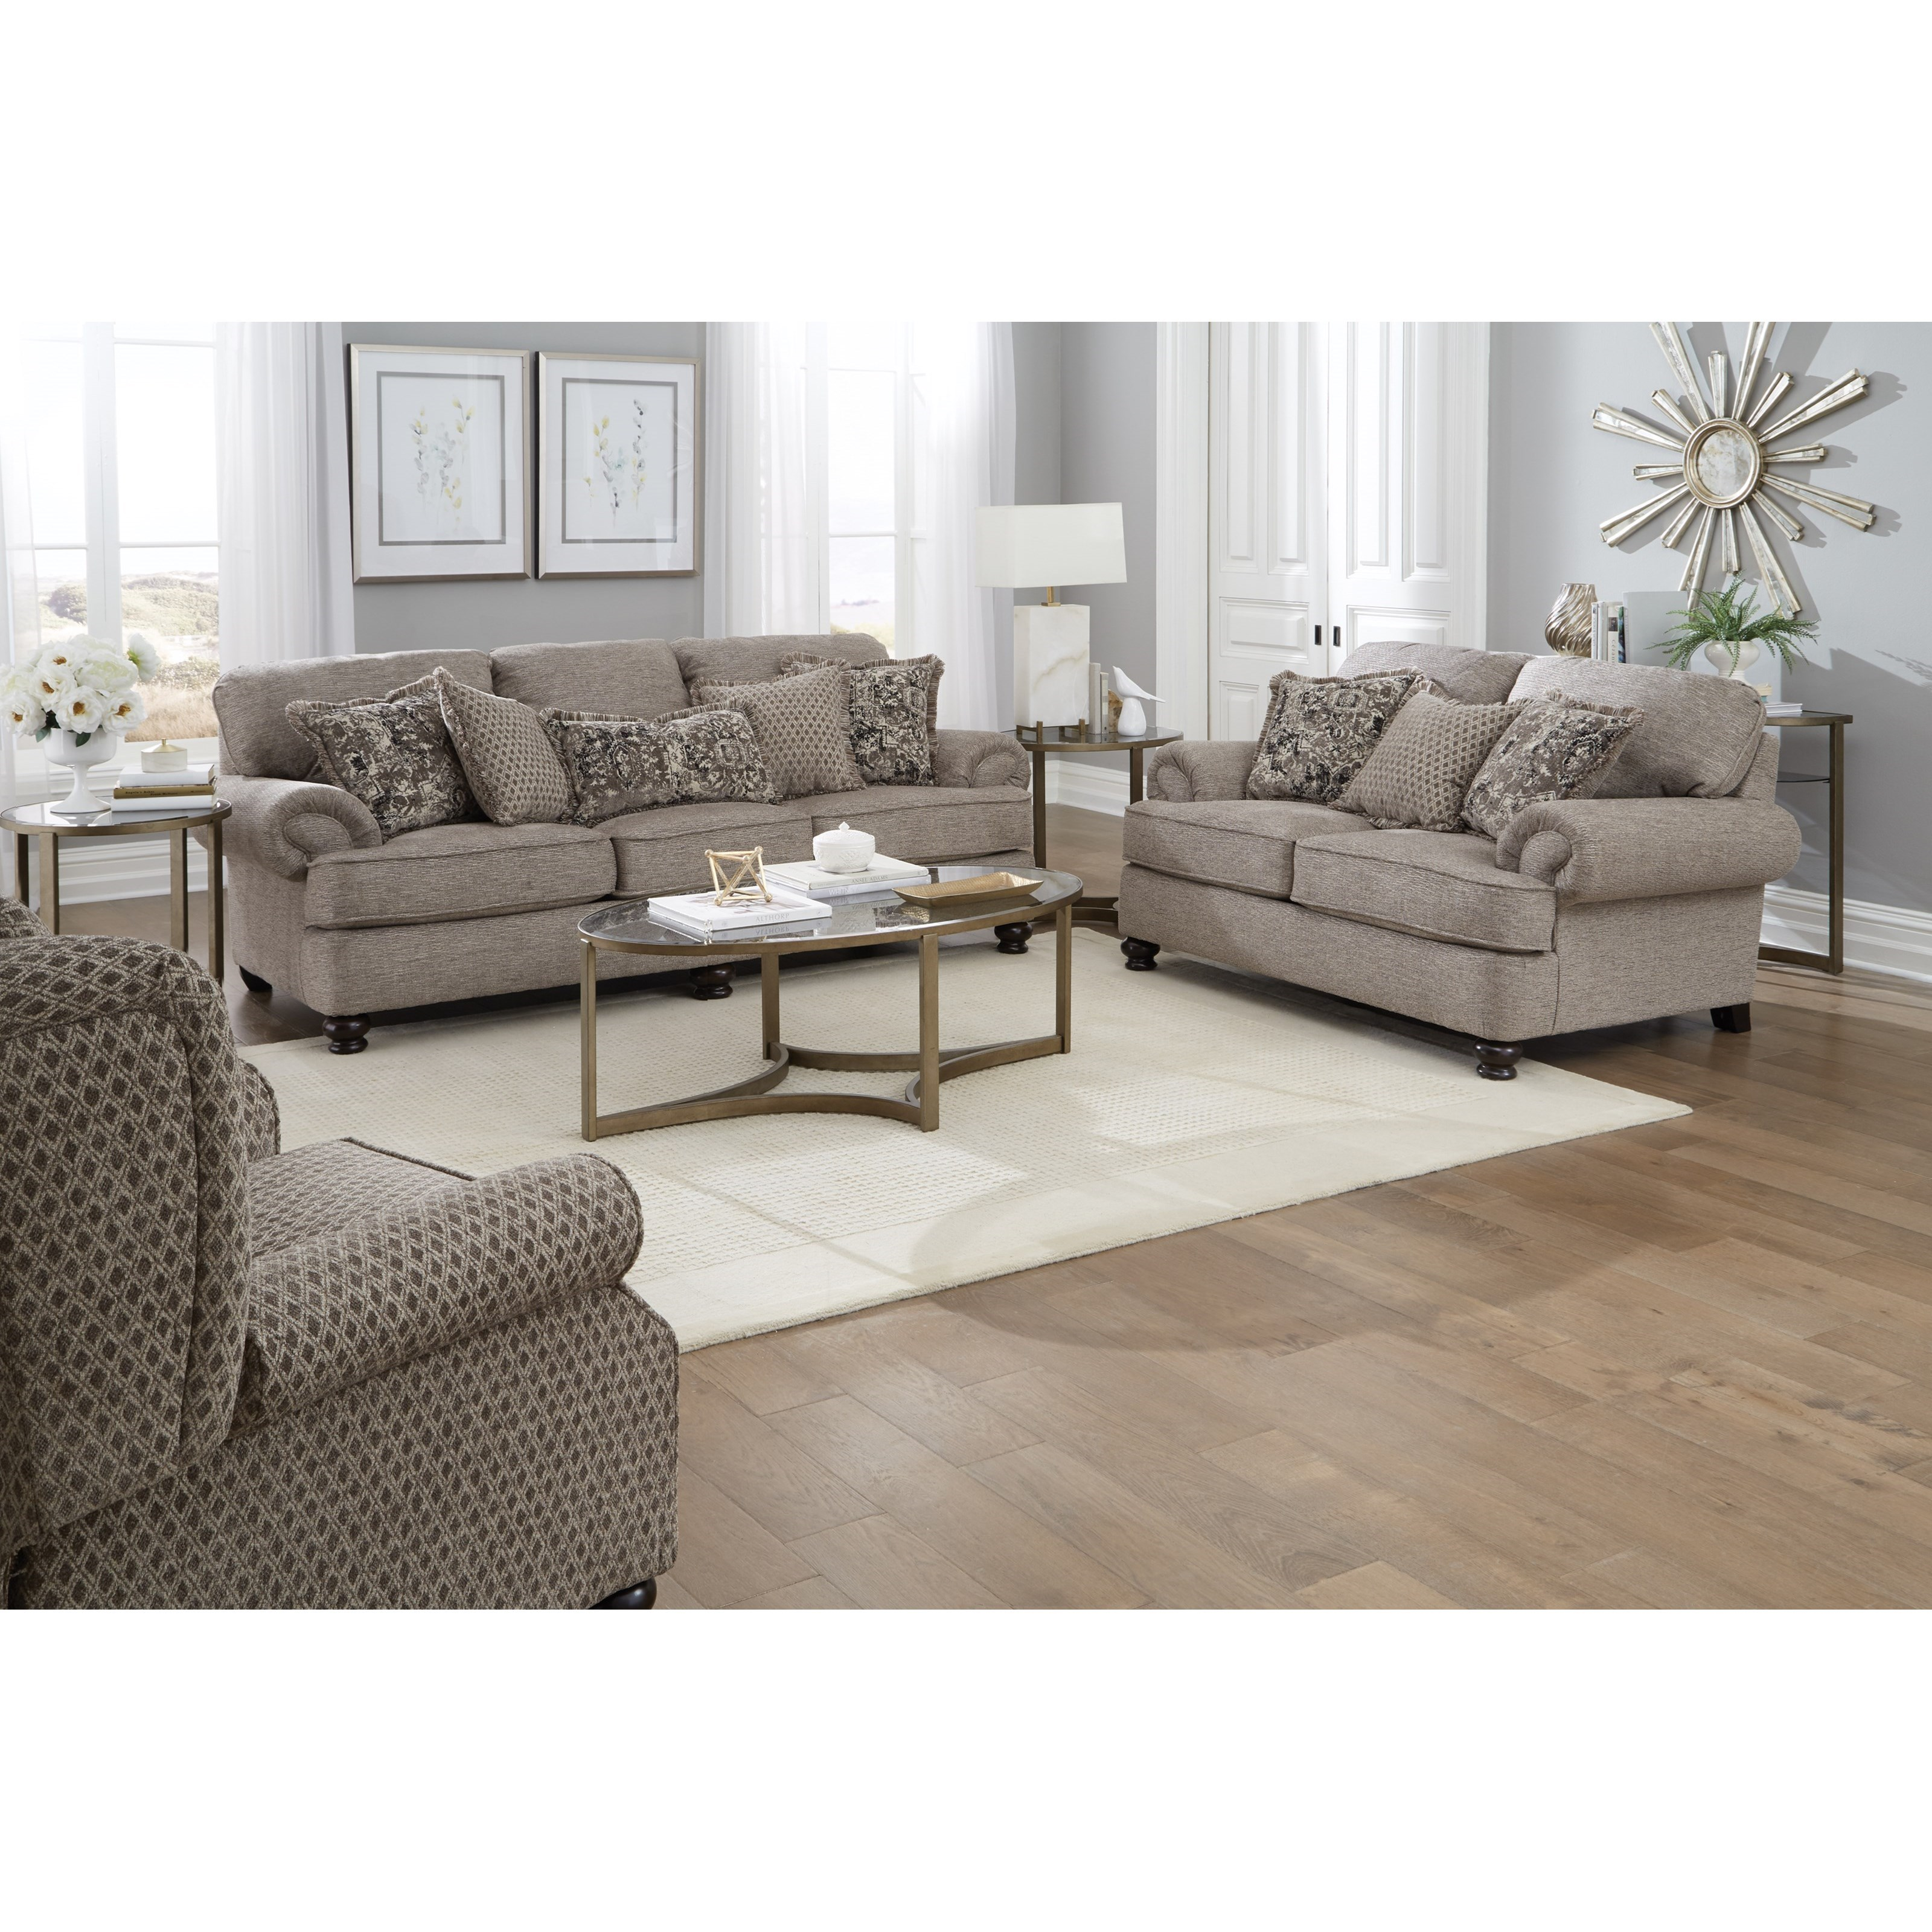 Freemont Living Room Group by Jackson Furniture at Northeast Factory Direct